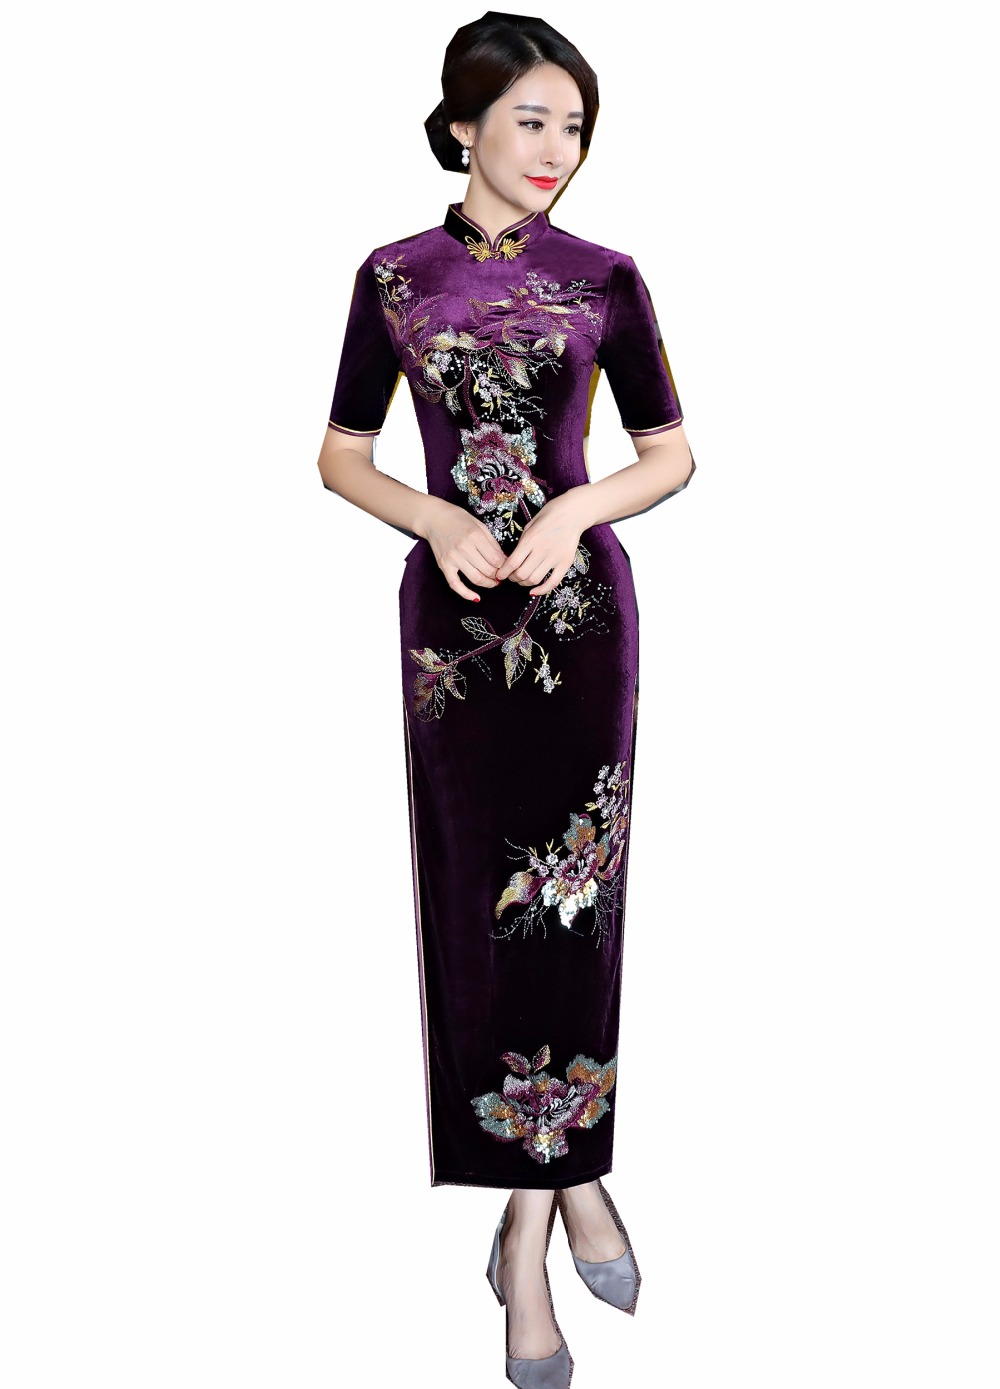 Shanghai Story Autumn Velvet Qipao Flower Embroidery Chinese traditional Dress Oriental dress Short Sleeve long Cheongsam Dress